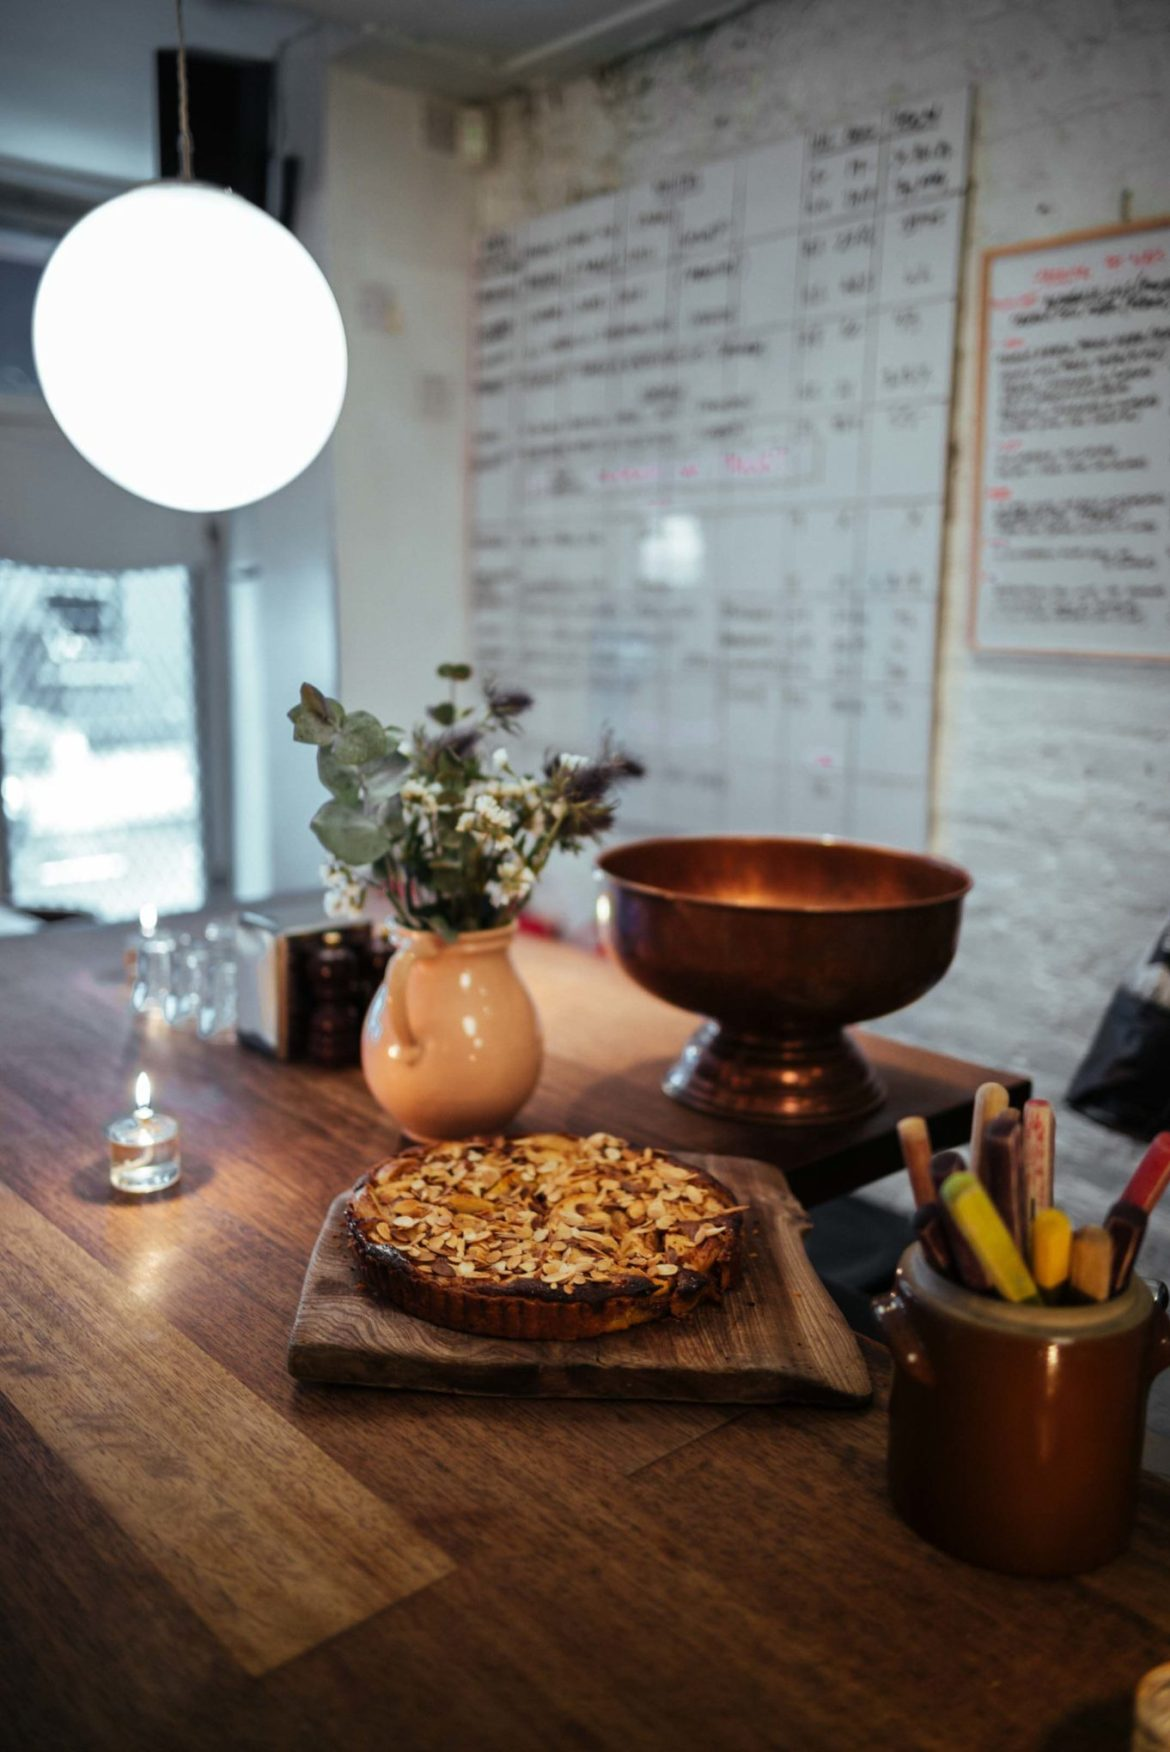 The Taste Edit recommends trying the seasonal tart at Ducksoup, one of the best restaurant in London serving a long list of natural wines.